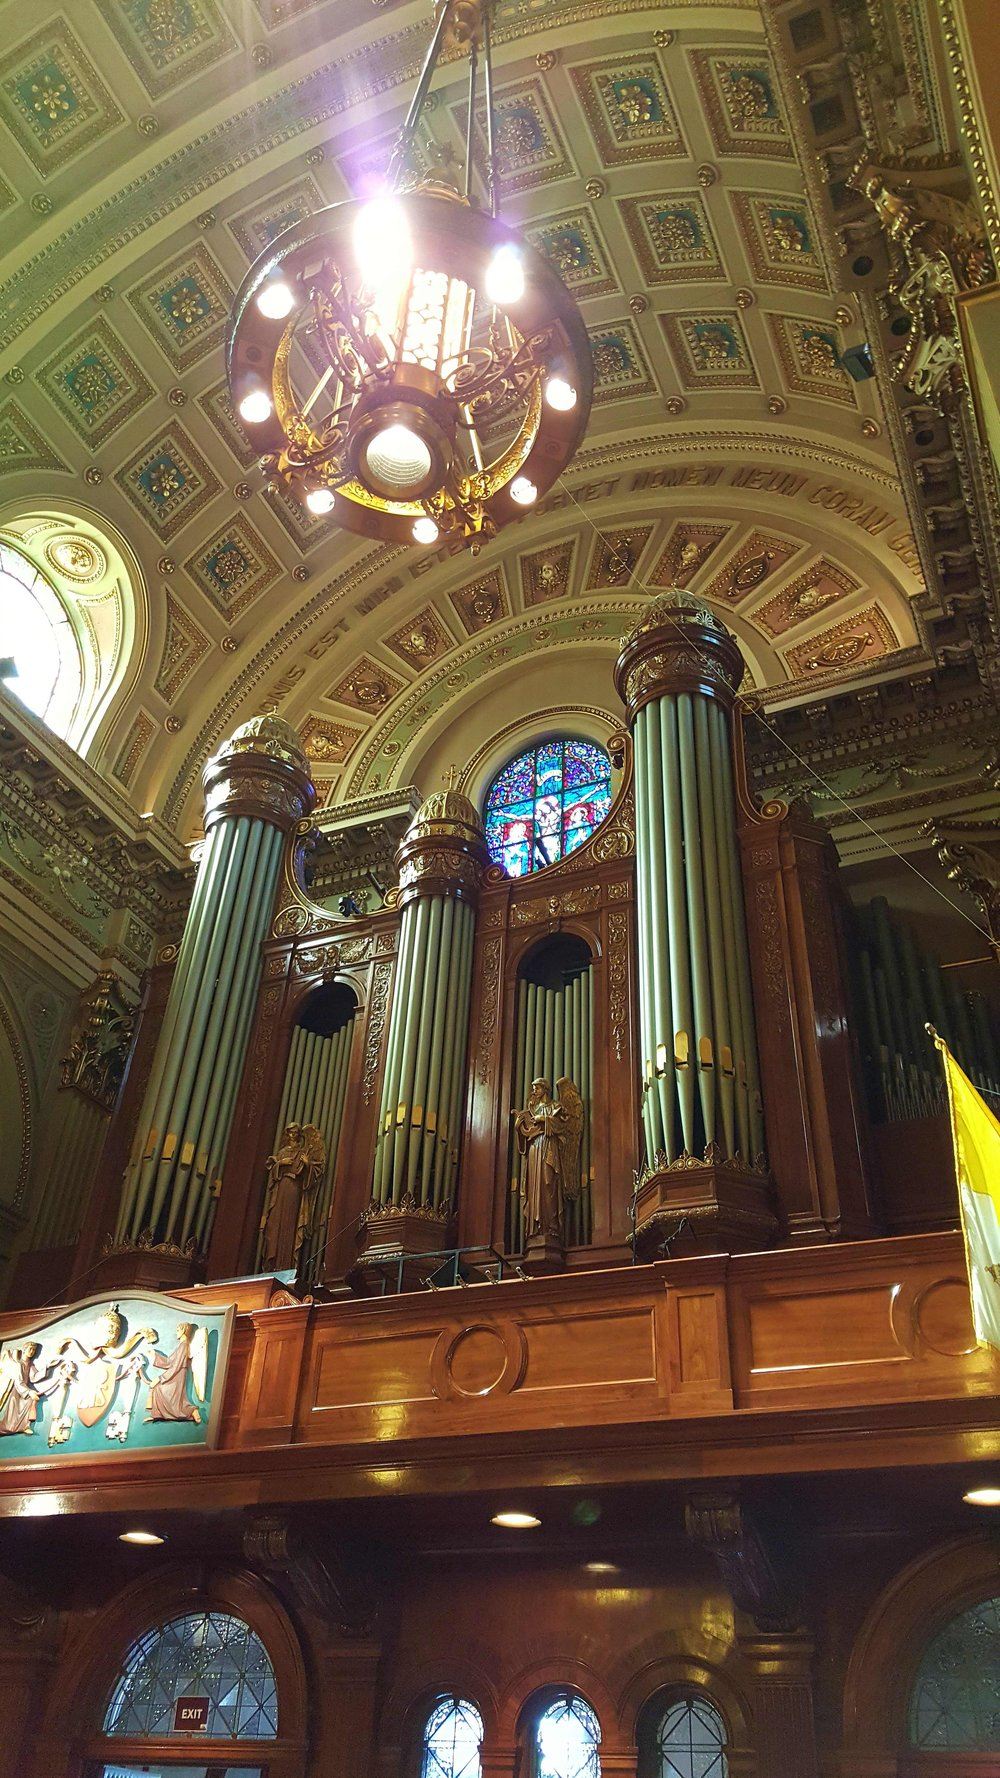 Audix MicroBoom and Audio-Technica Engineered series microphones are used in the choir loft.